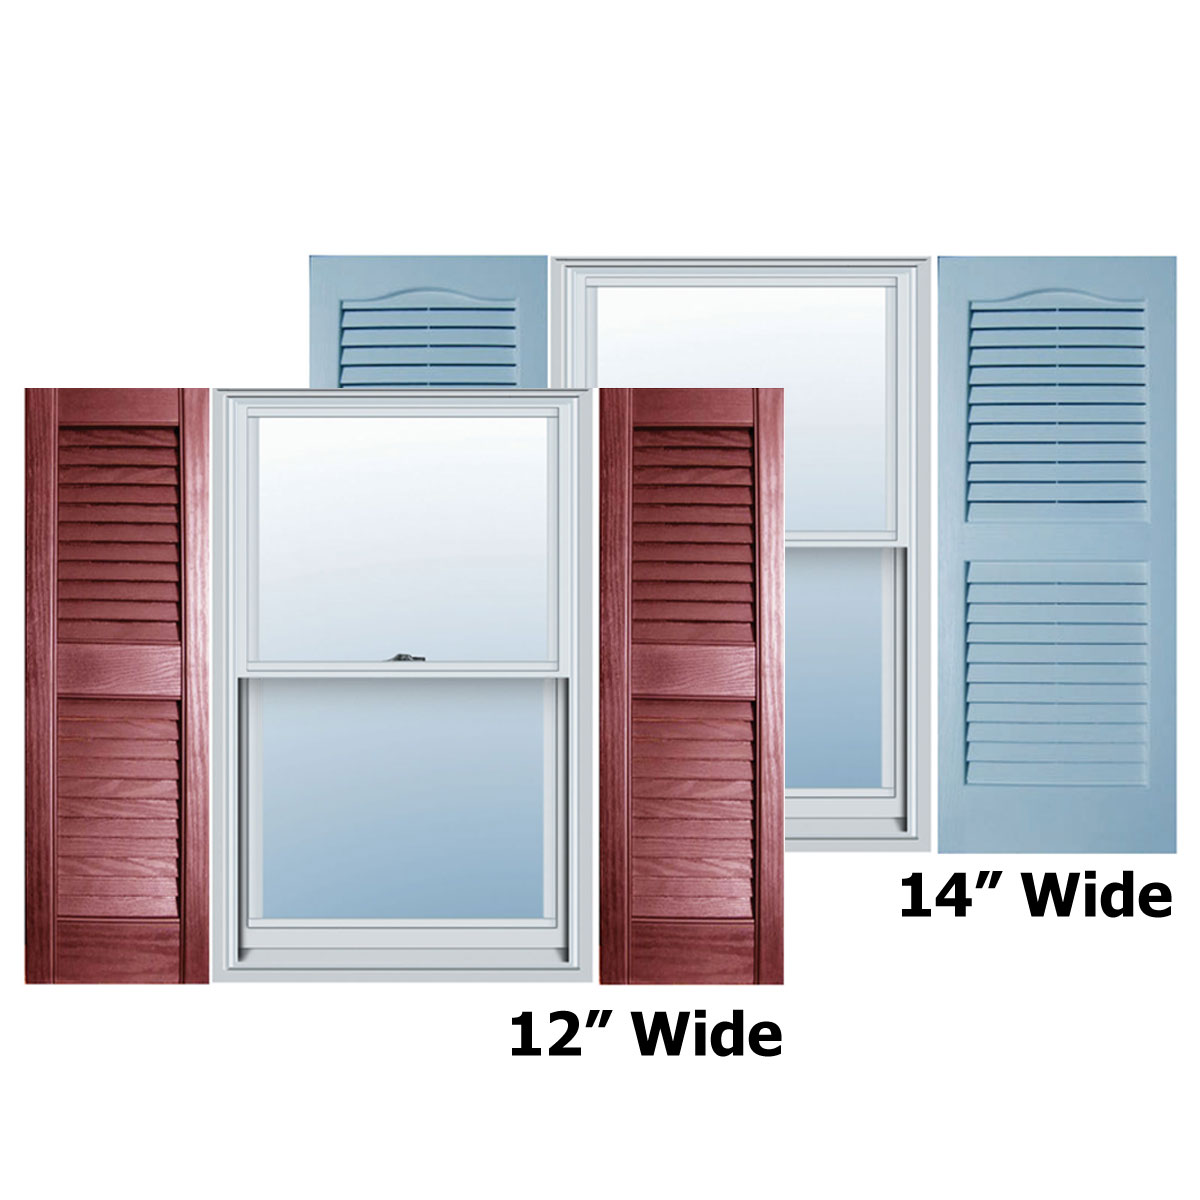 Alpha systems llc evl builders choice vinyl open louver wind for Exterior louvered window shutters